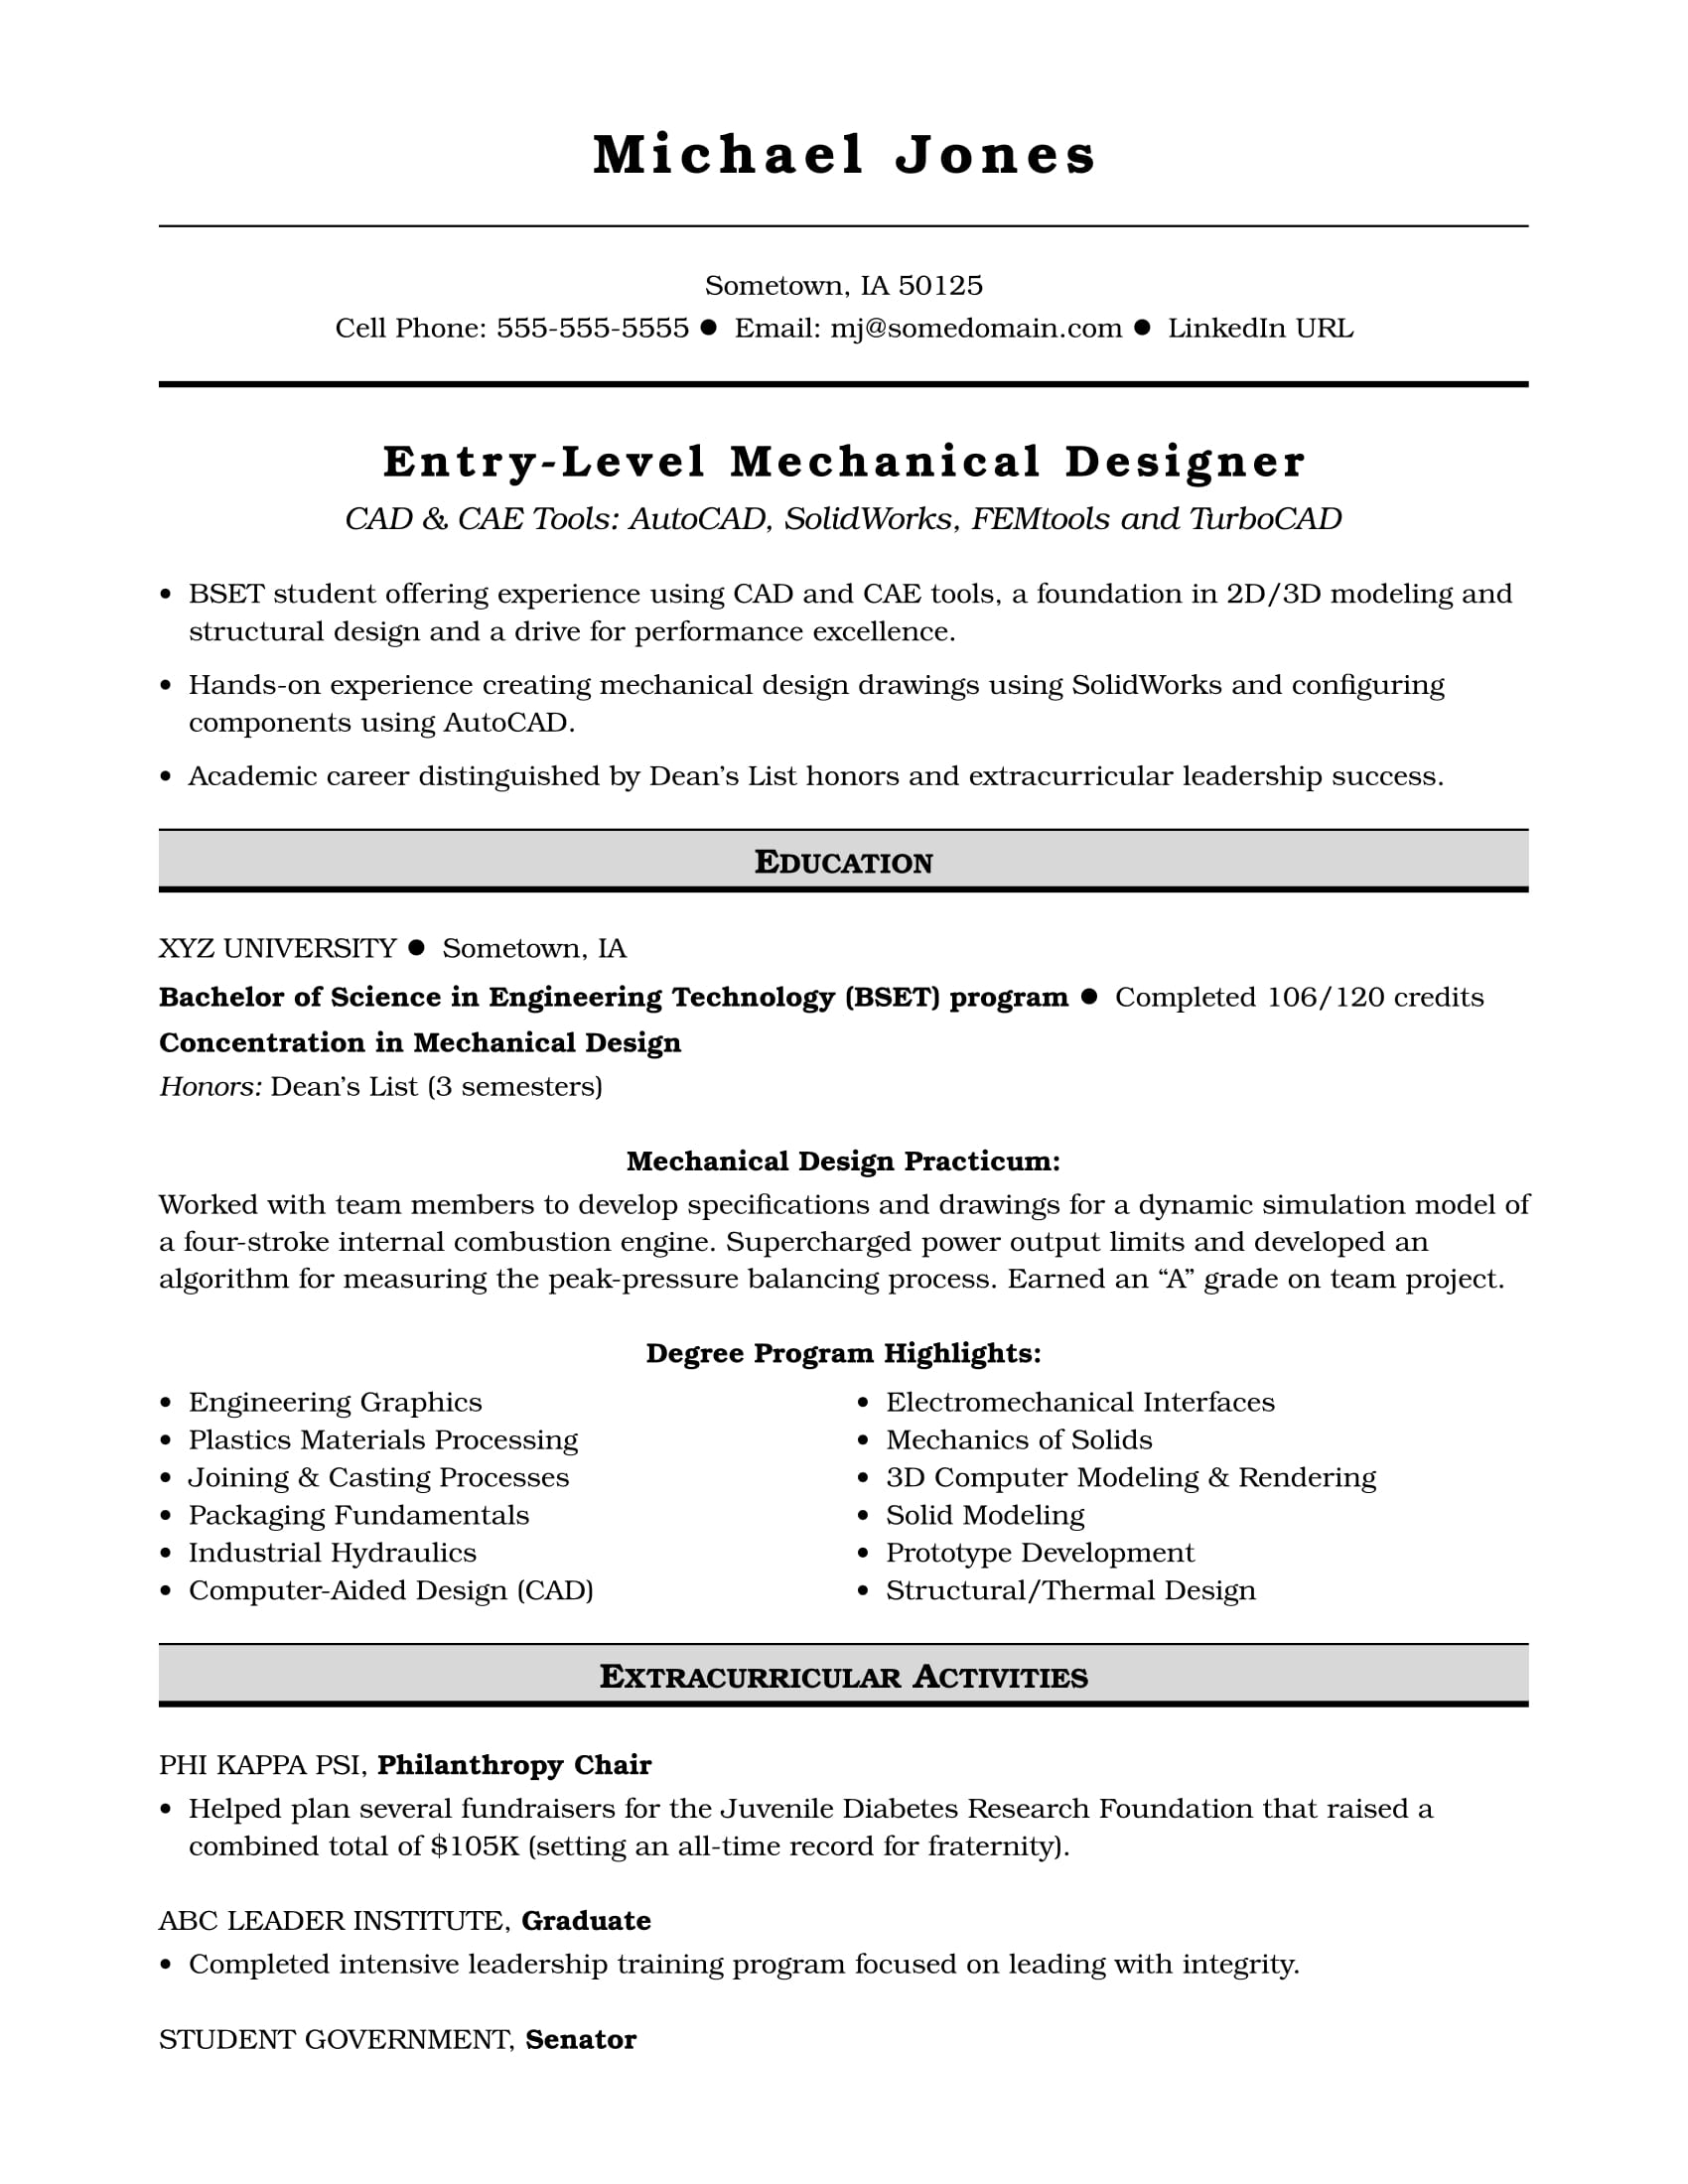 Sample Resume for an Entry-Level Mechanical Designer | Monster.com